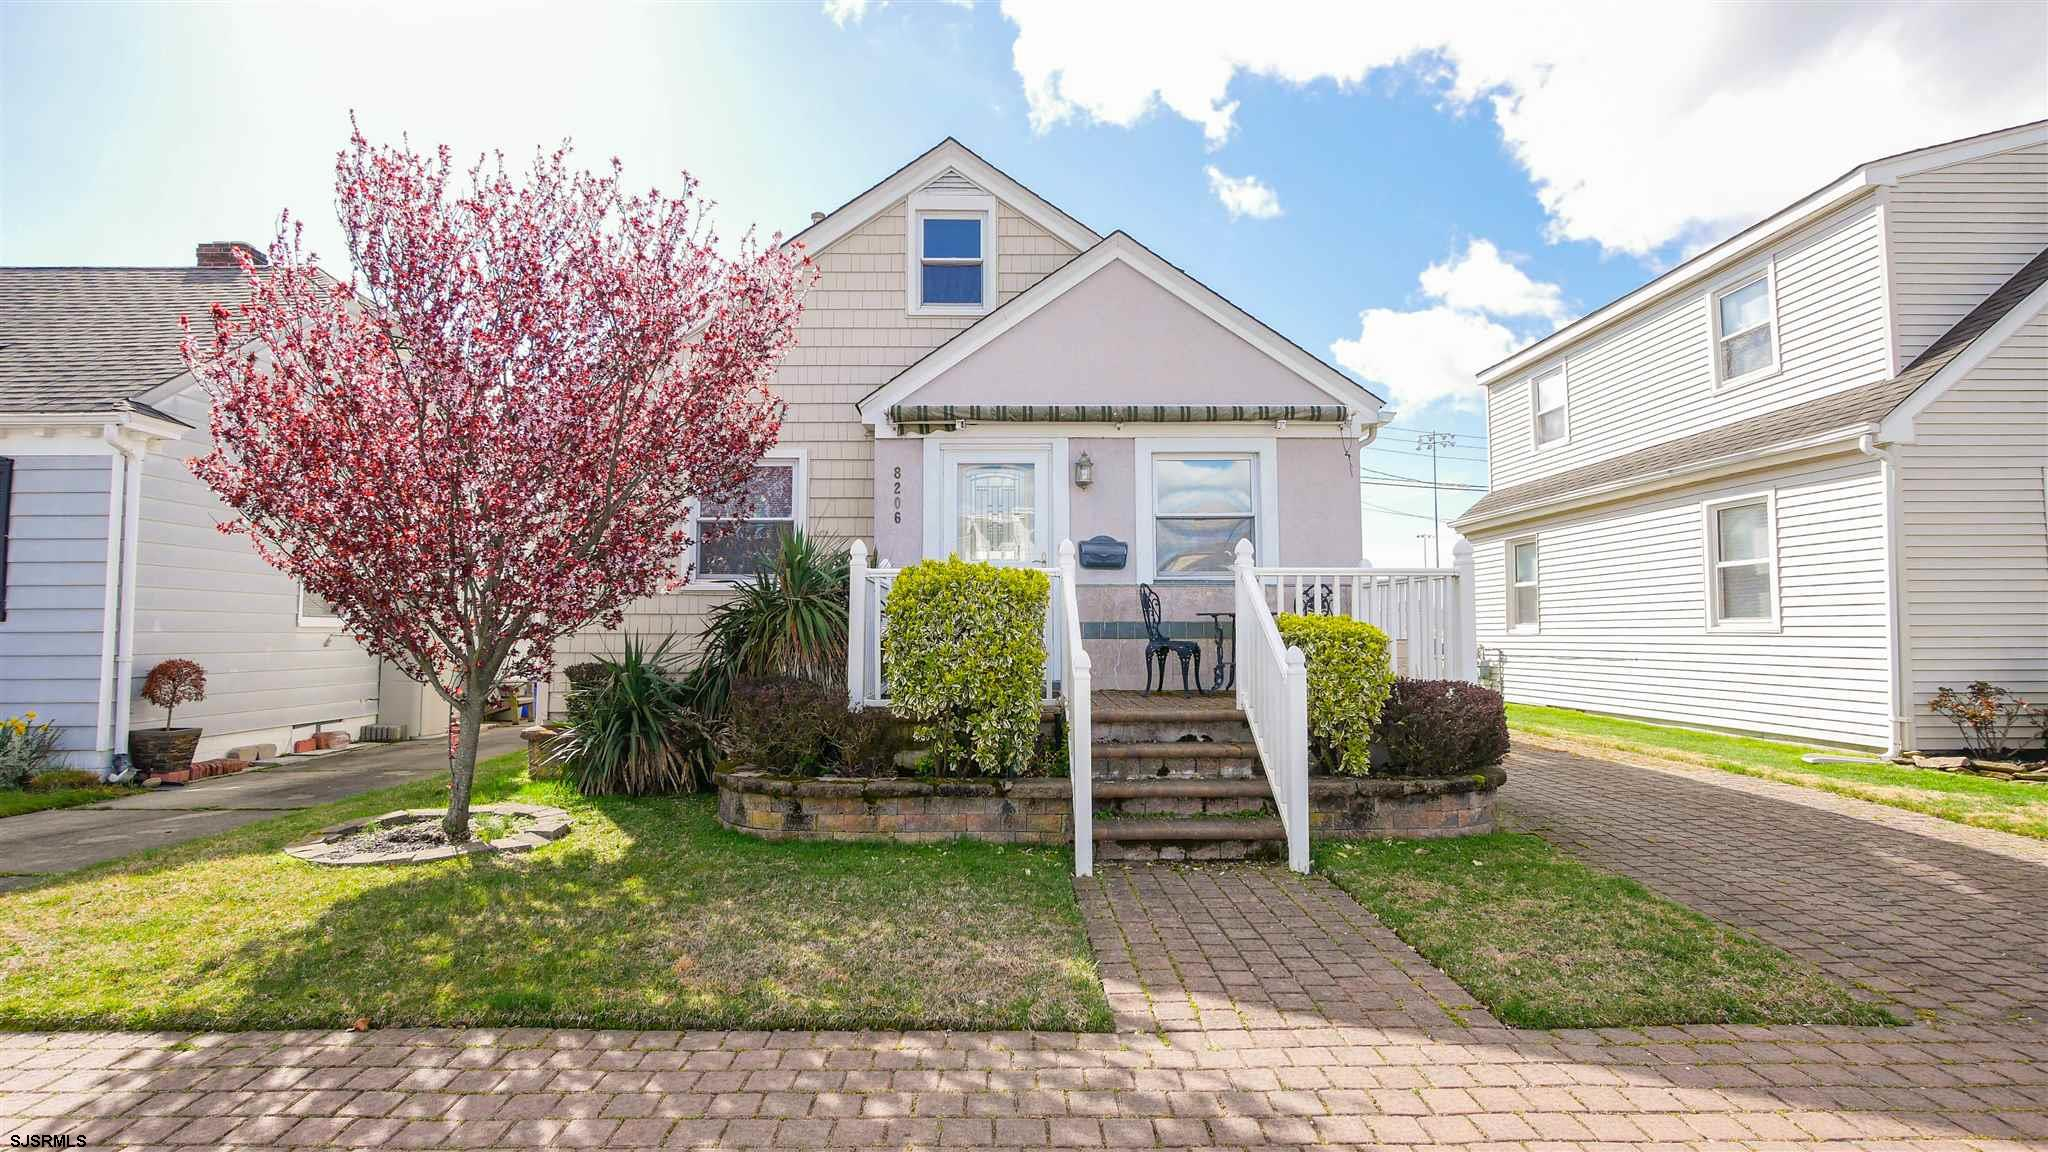 Fabulous Shore Home perfect for a starter second home, retirees, weekend warriors, or an ideal getaw